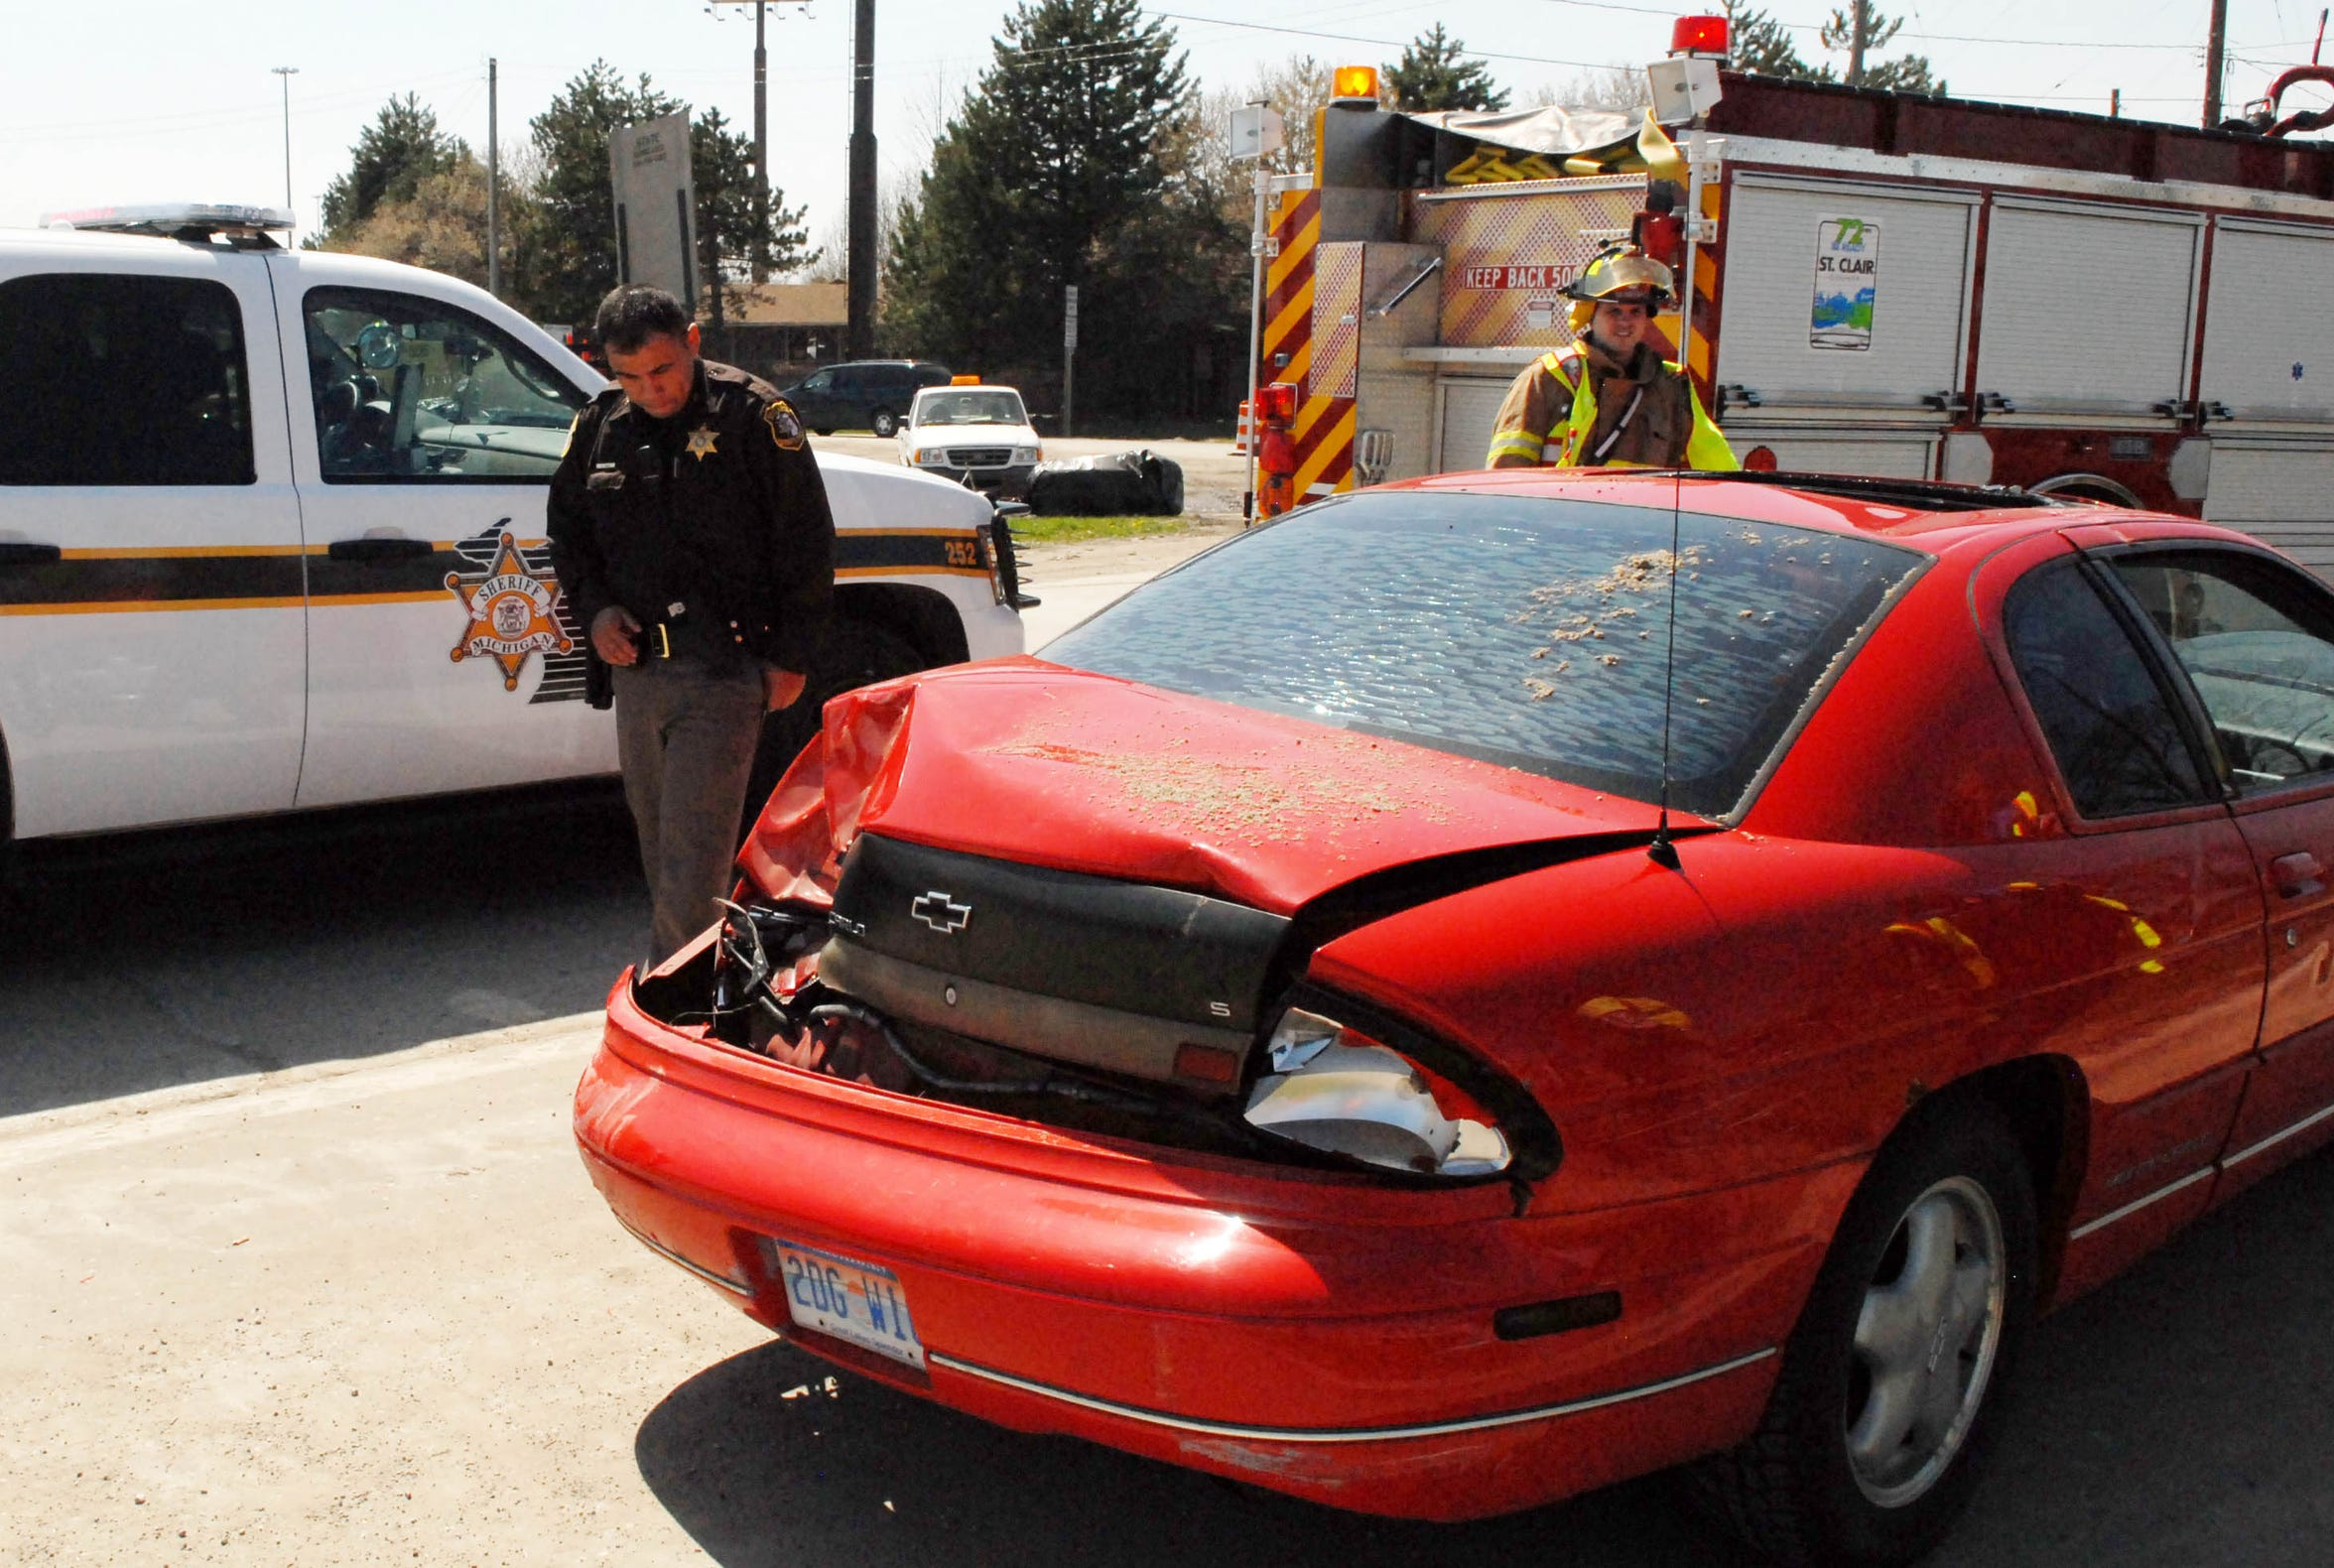 St. Clair County Sheriff Deputy Jacob Garza, left, and a Port Huron Township firefighter look over the damage to a car in 2011 on the Water Street I-94 over pass. Garza has been an analyst with the Detroit and Southeast Michigan Information and Intelligence Center for the last seven years.